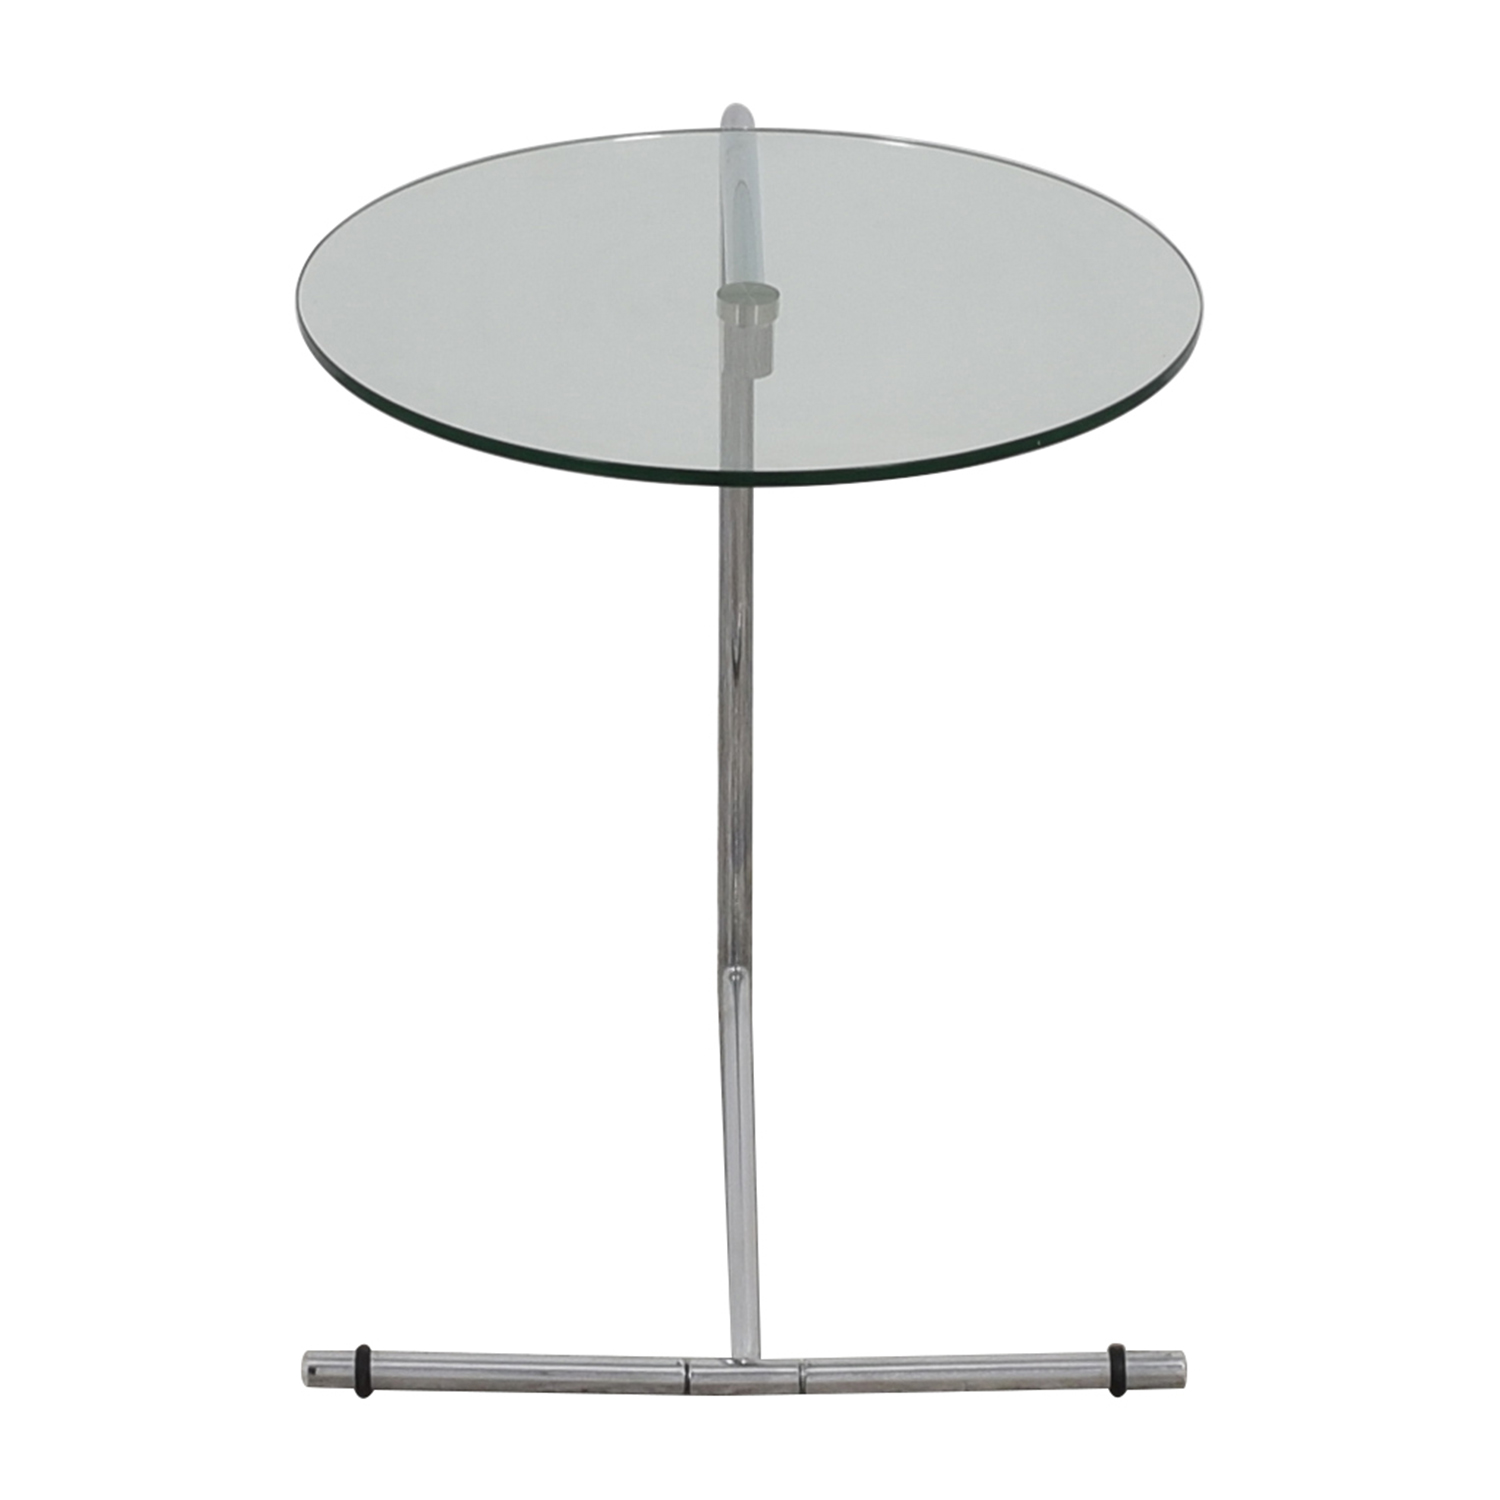 Z Gallerie Z Gallerie Glass and Metal Side Table price